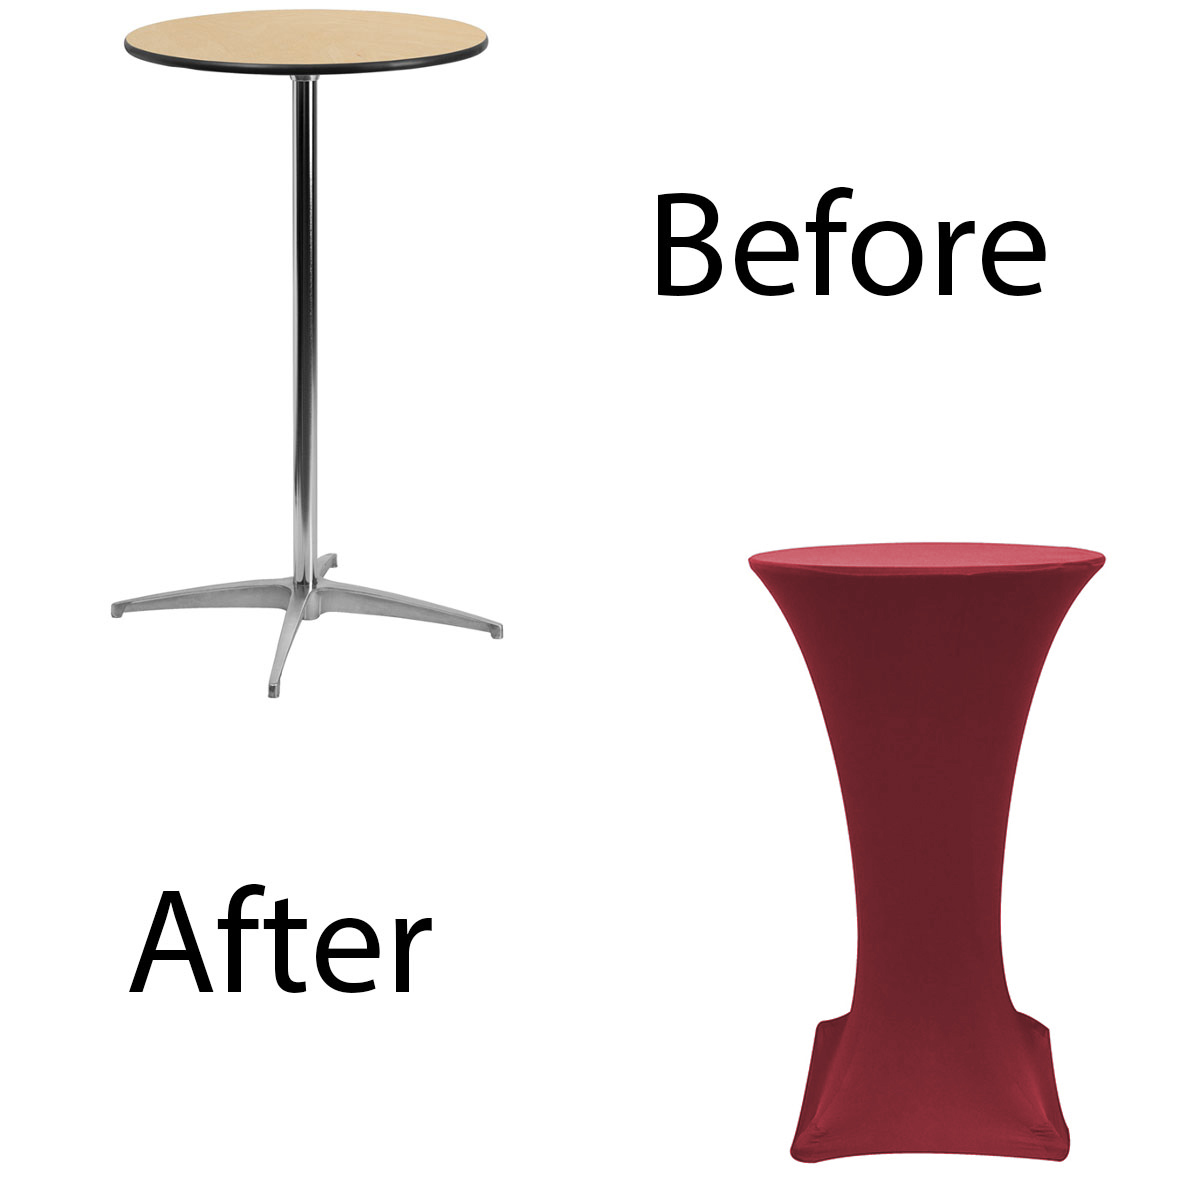 24-inch-highboy-cocktail-spandex-table-covers-burgundy-before-after.jpg